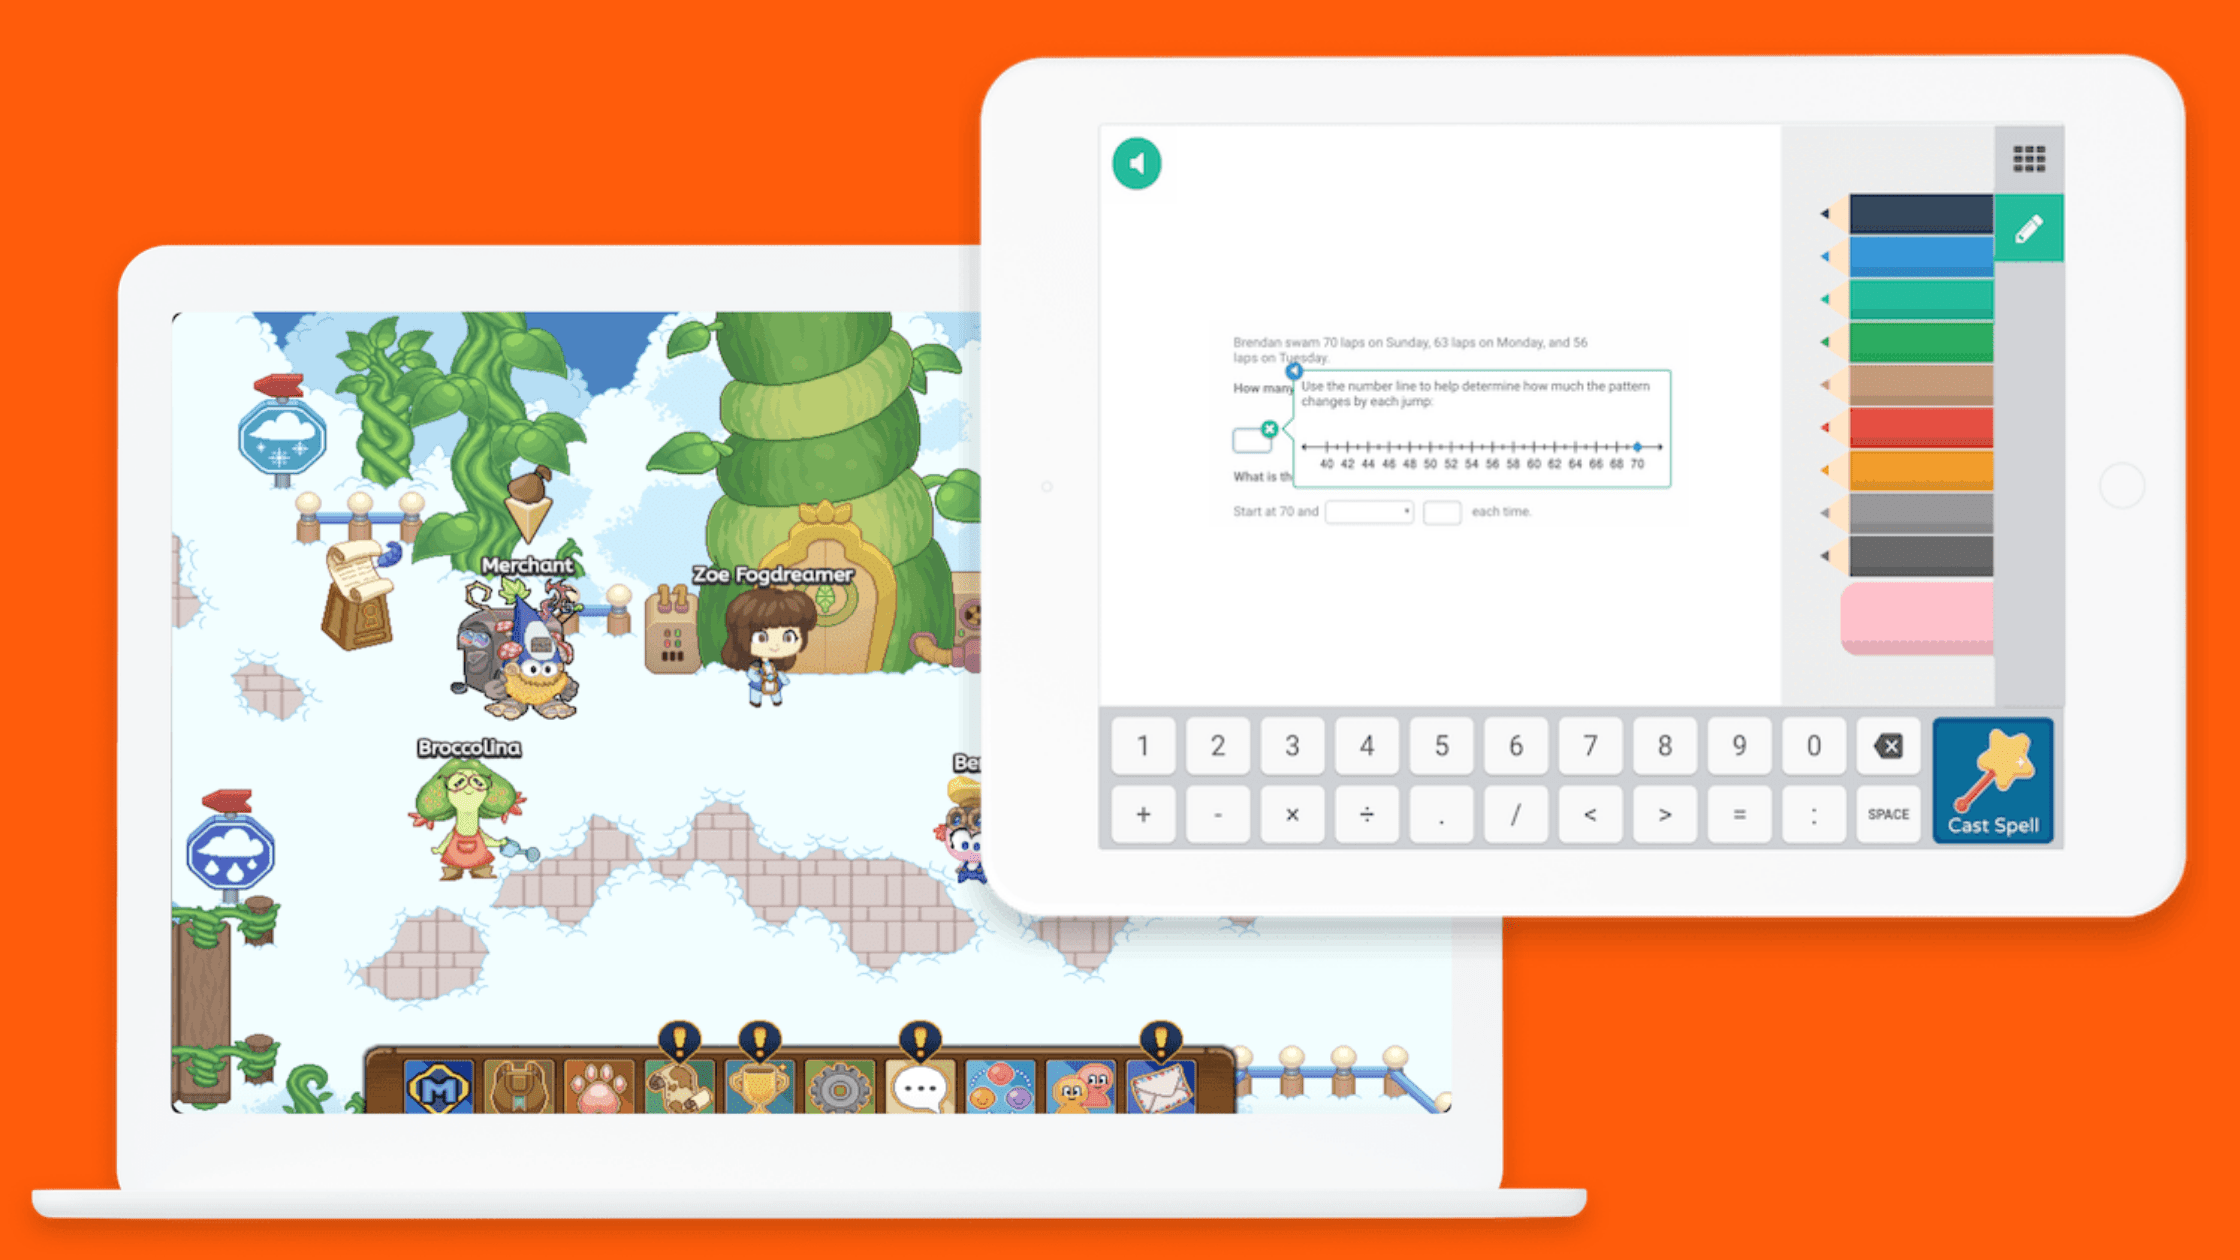 A glimpse of the Prodigy Math Game world and a sample math question a kid could receive while playing.